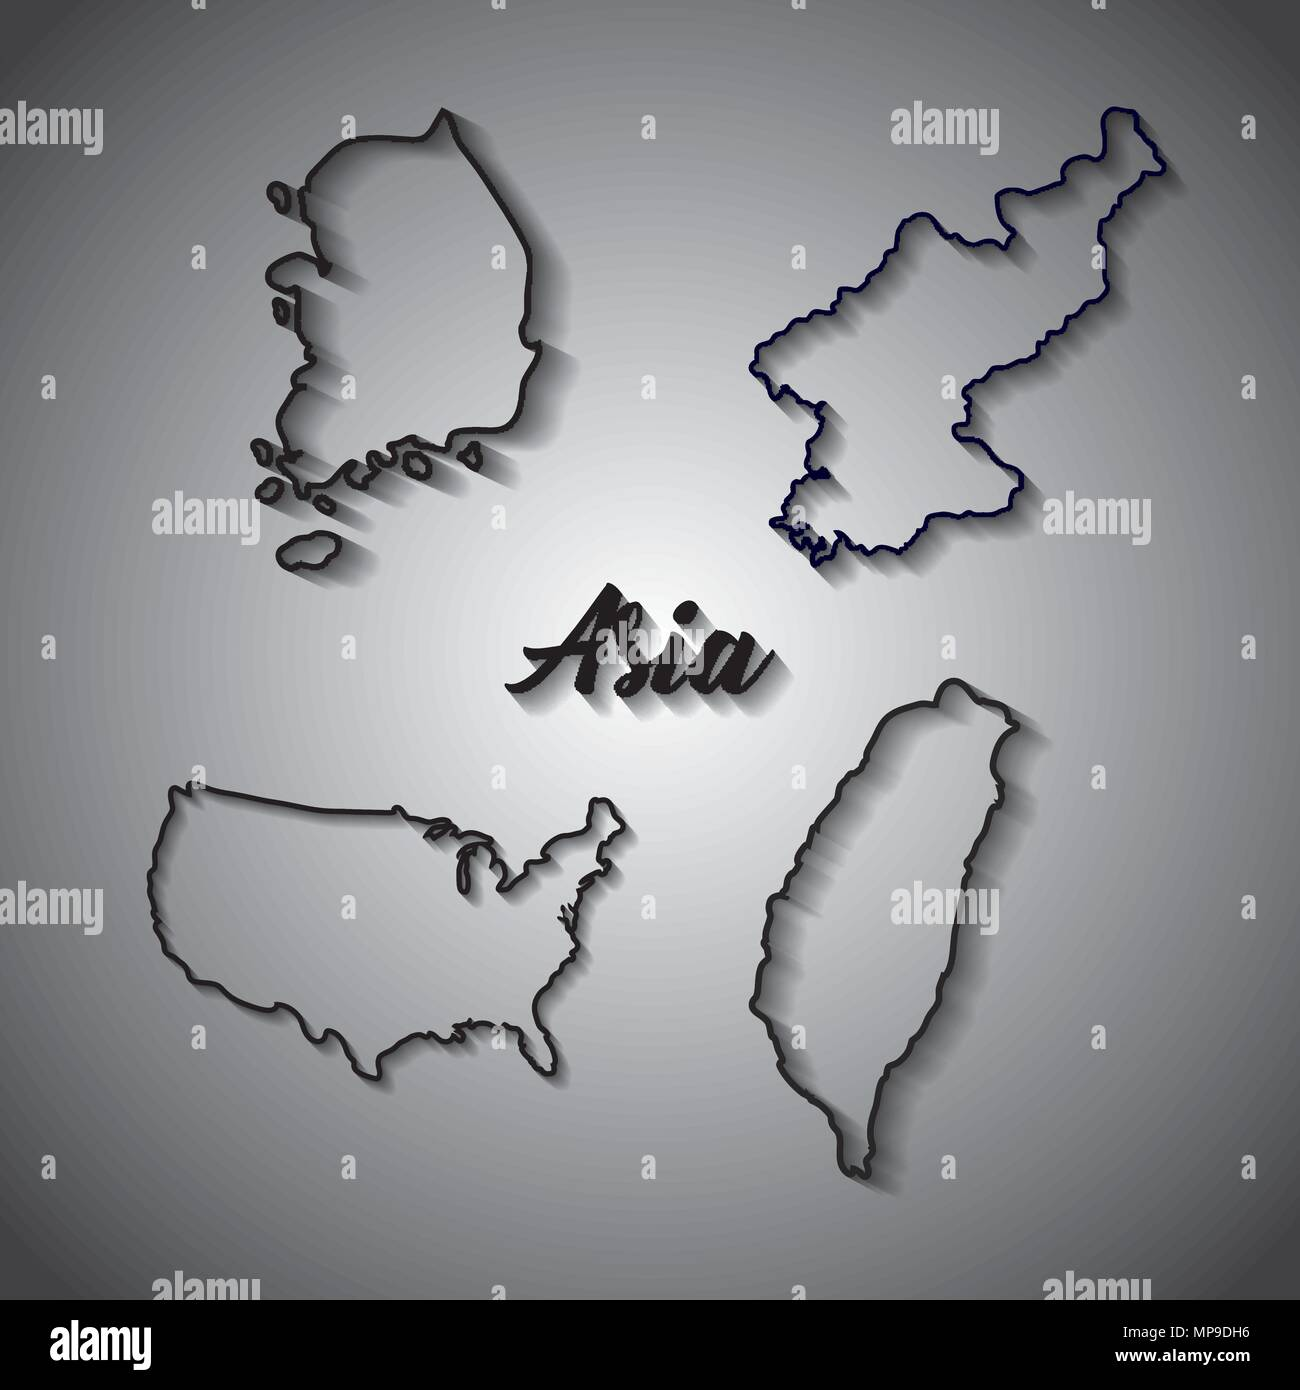 country maps of asia continent over gray background  vector     country maps of asia continent over gray background  vector illustration